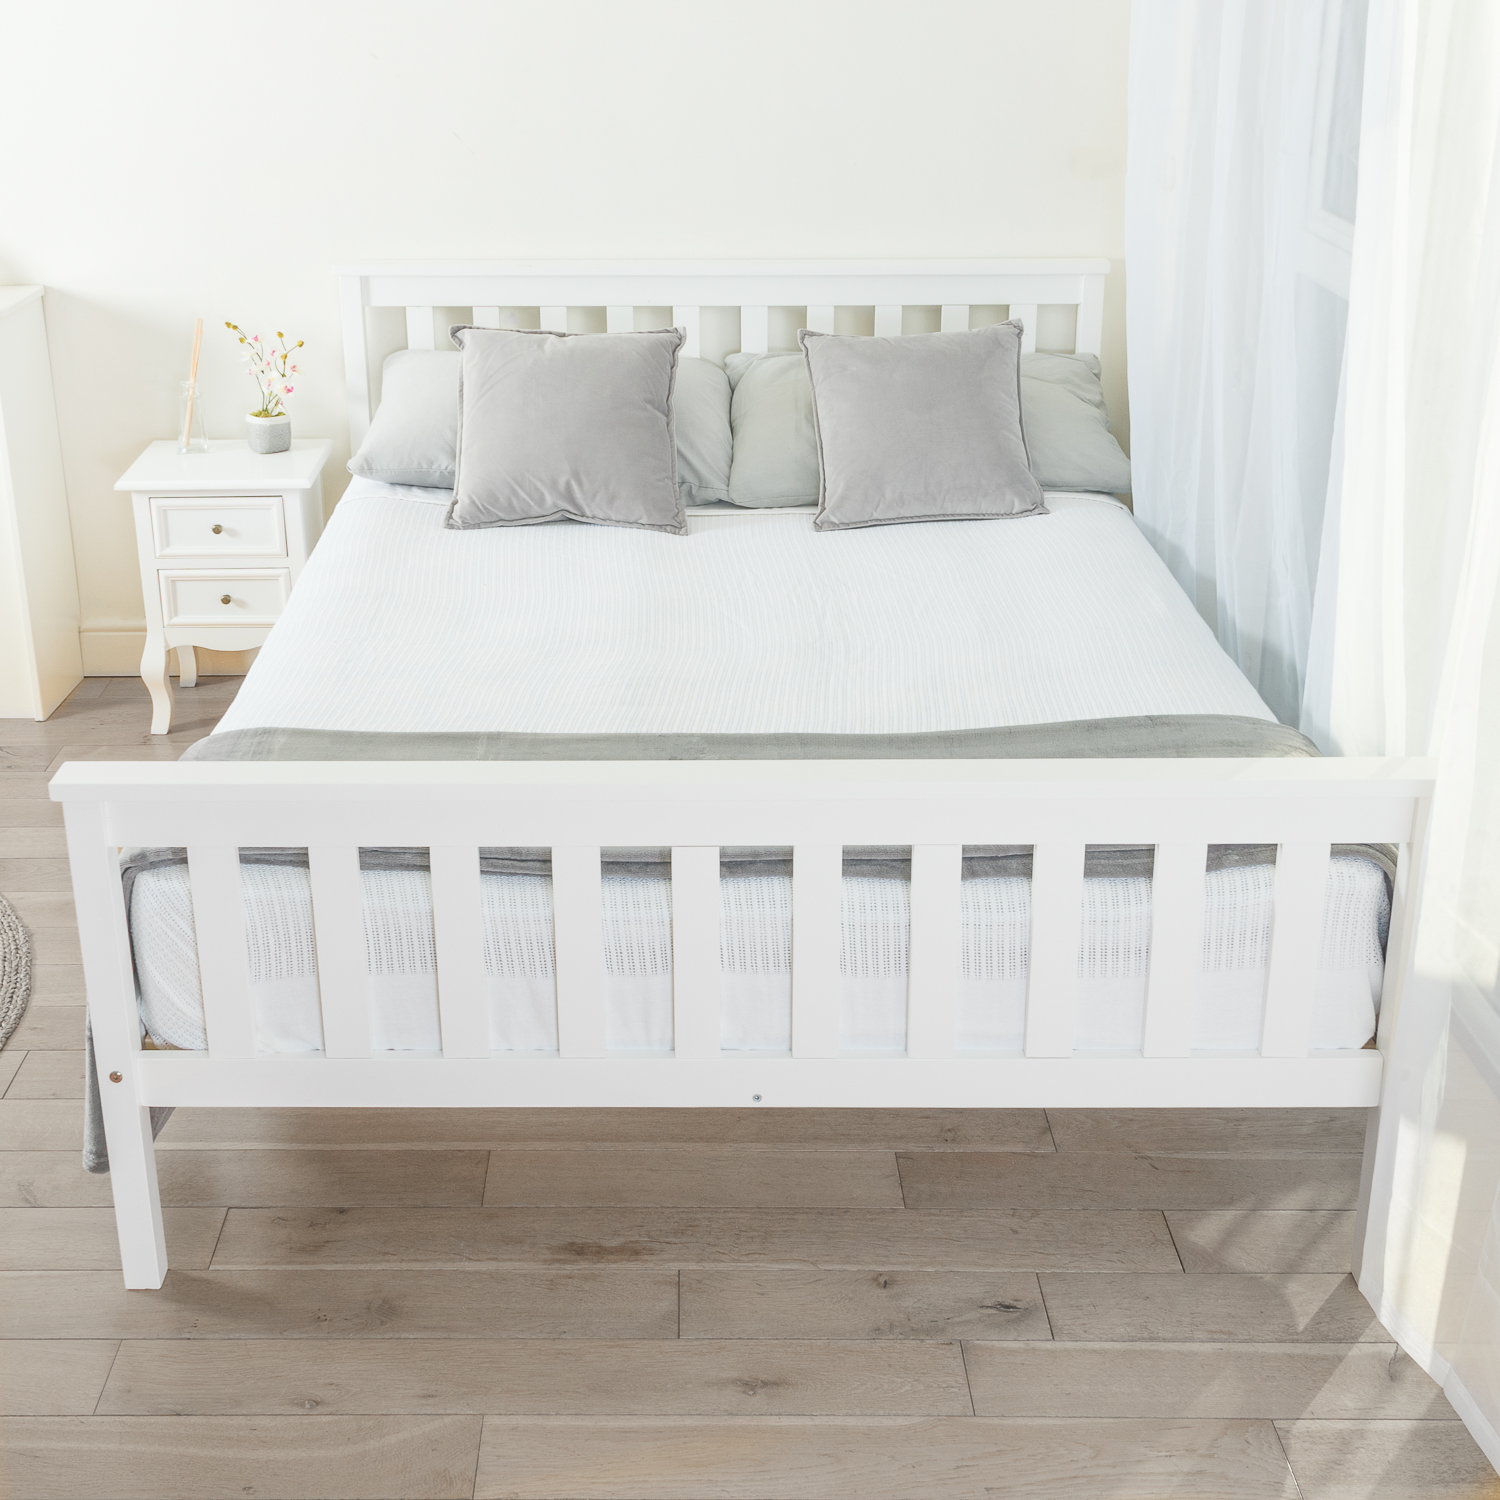 White Wooden Small Double Bed Solid Wooden Double Bed Frame In White Home Treats Uk